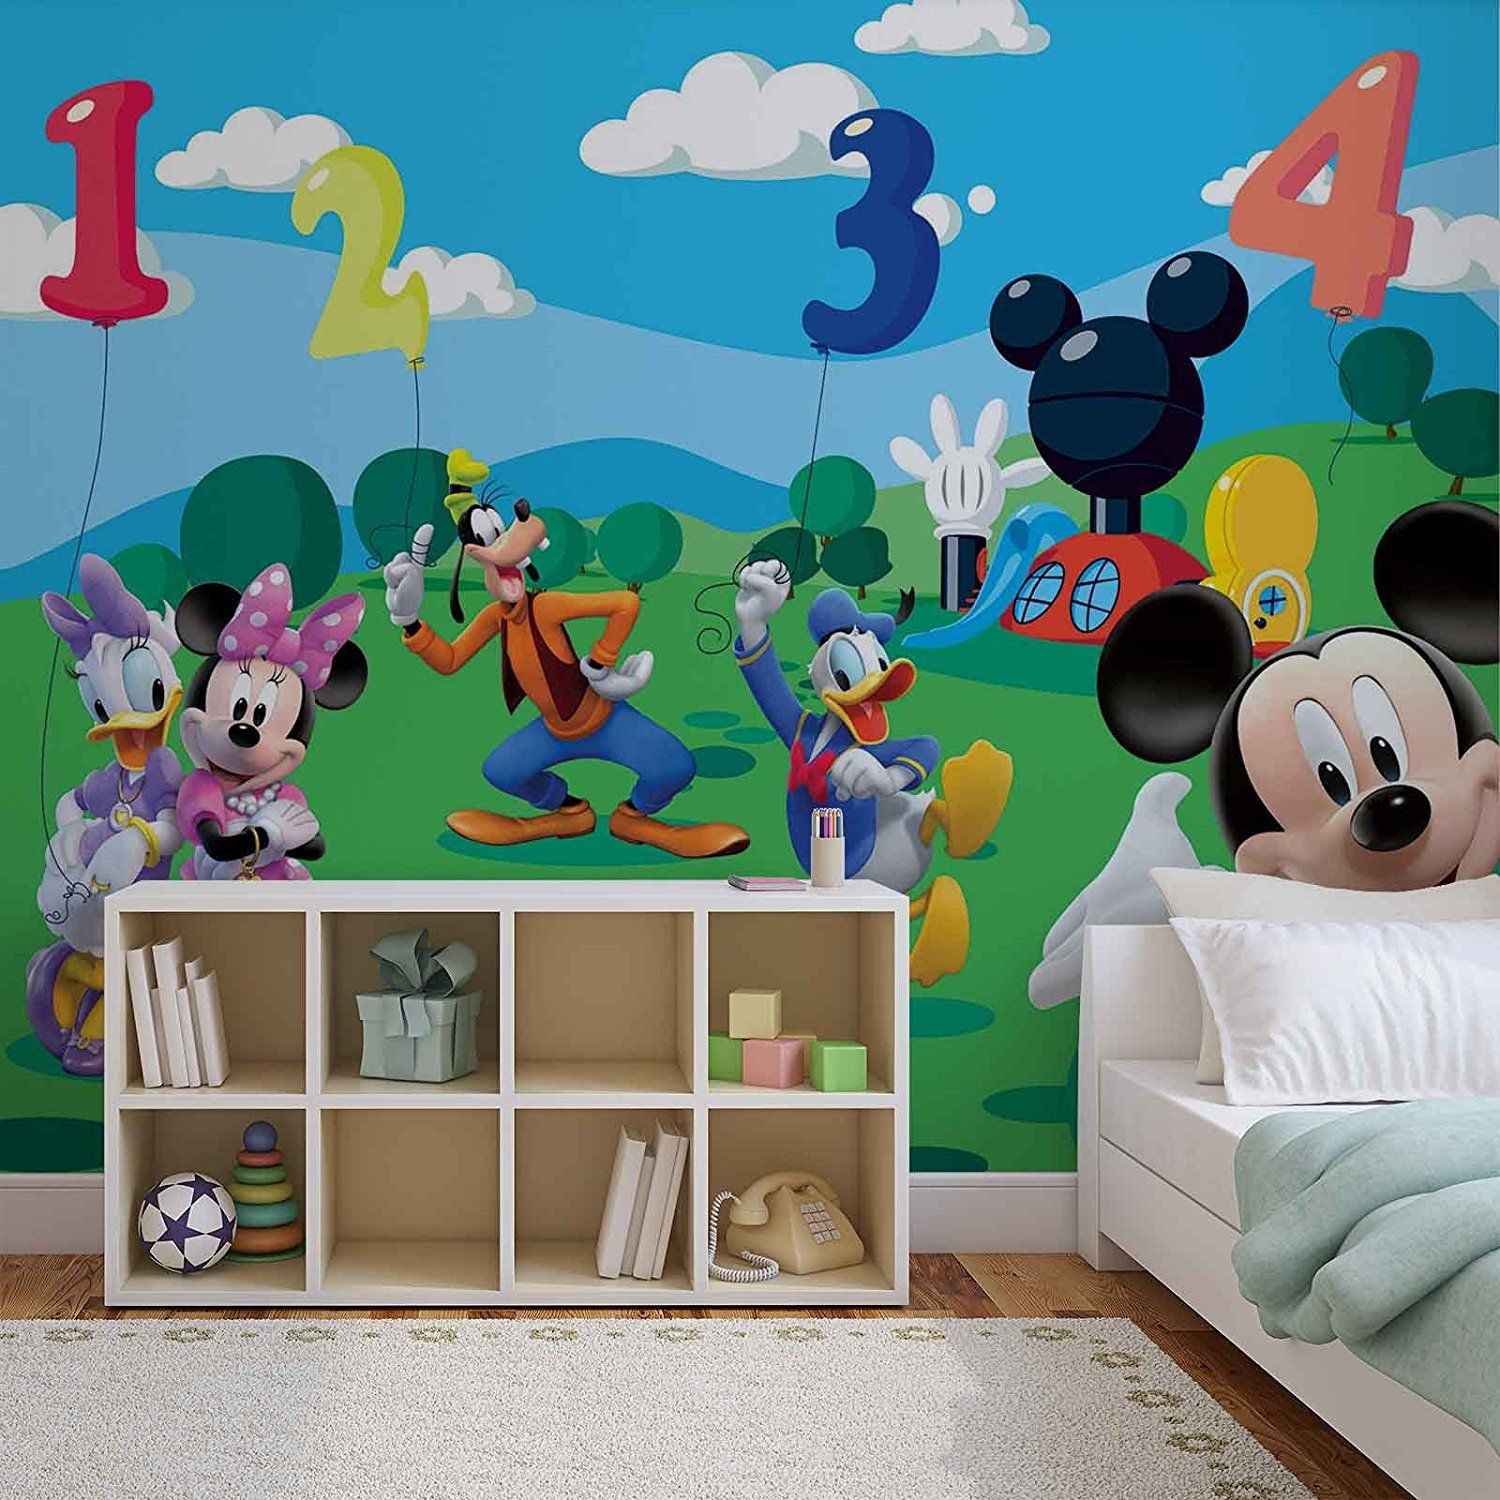 Fototapete Kinderzimmer Minnie Mouse Disney Micky Maus Wallsticker Warehouse Fototapete